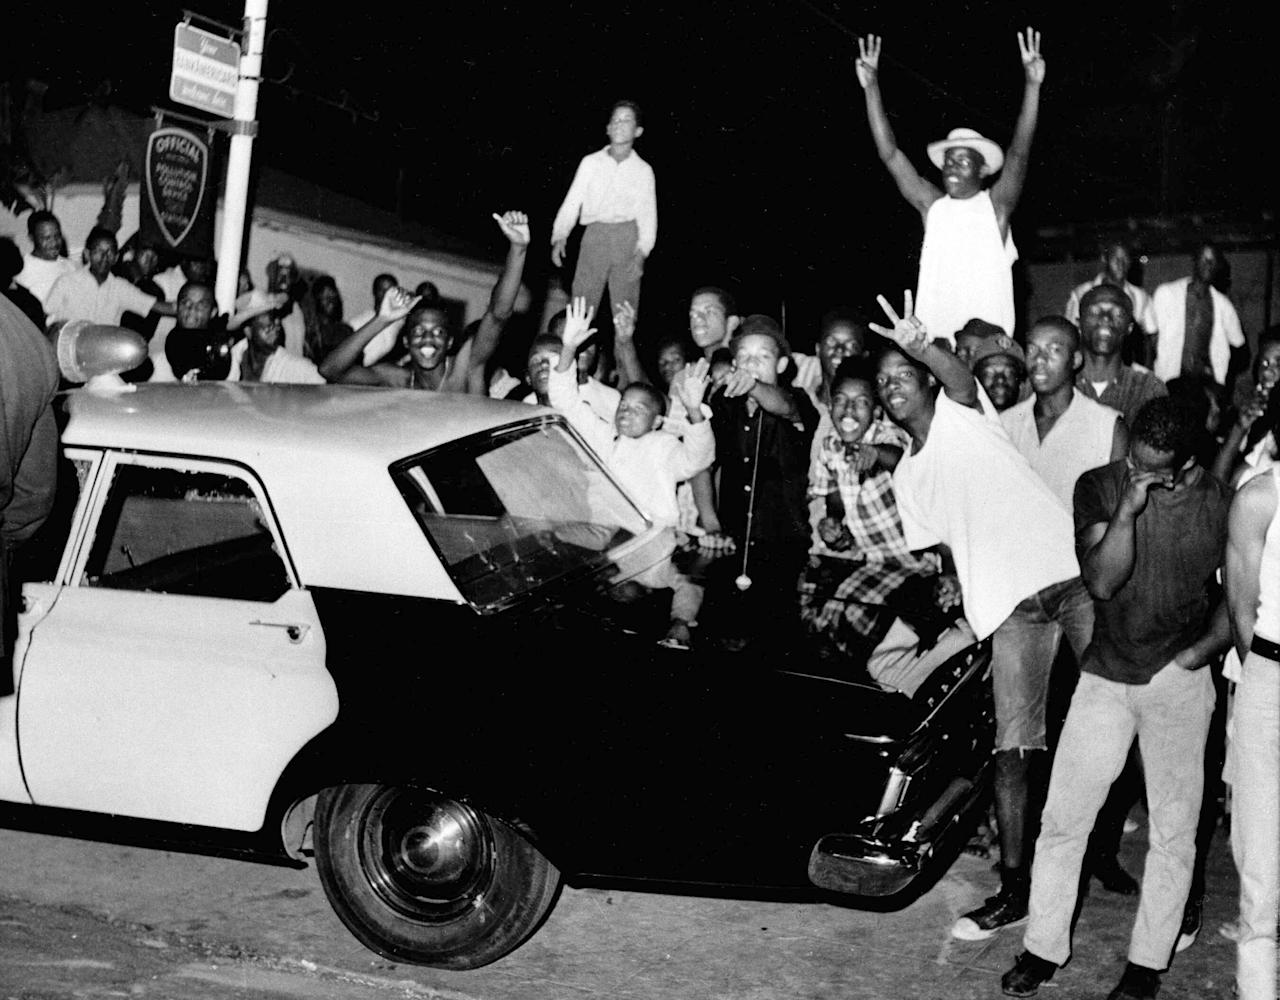 www.yahoo.com: AP Was There: Watts riots erupt in Black LA neighborhood